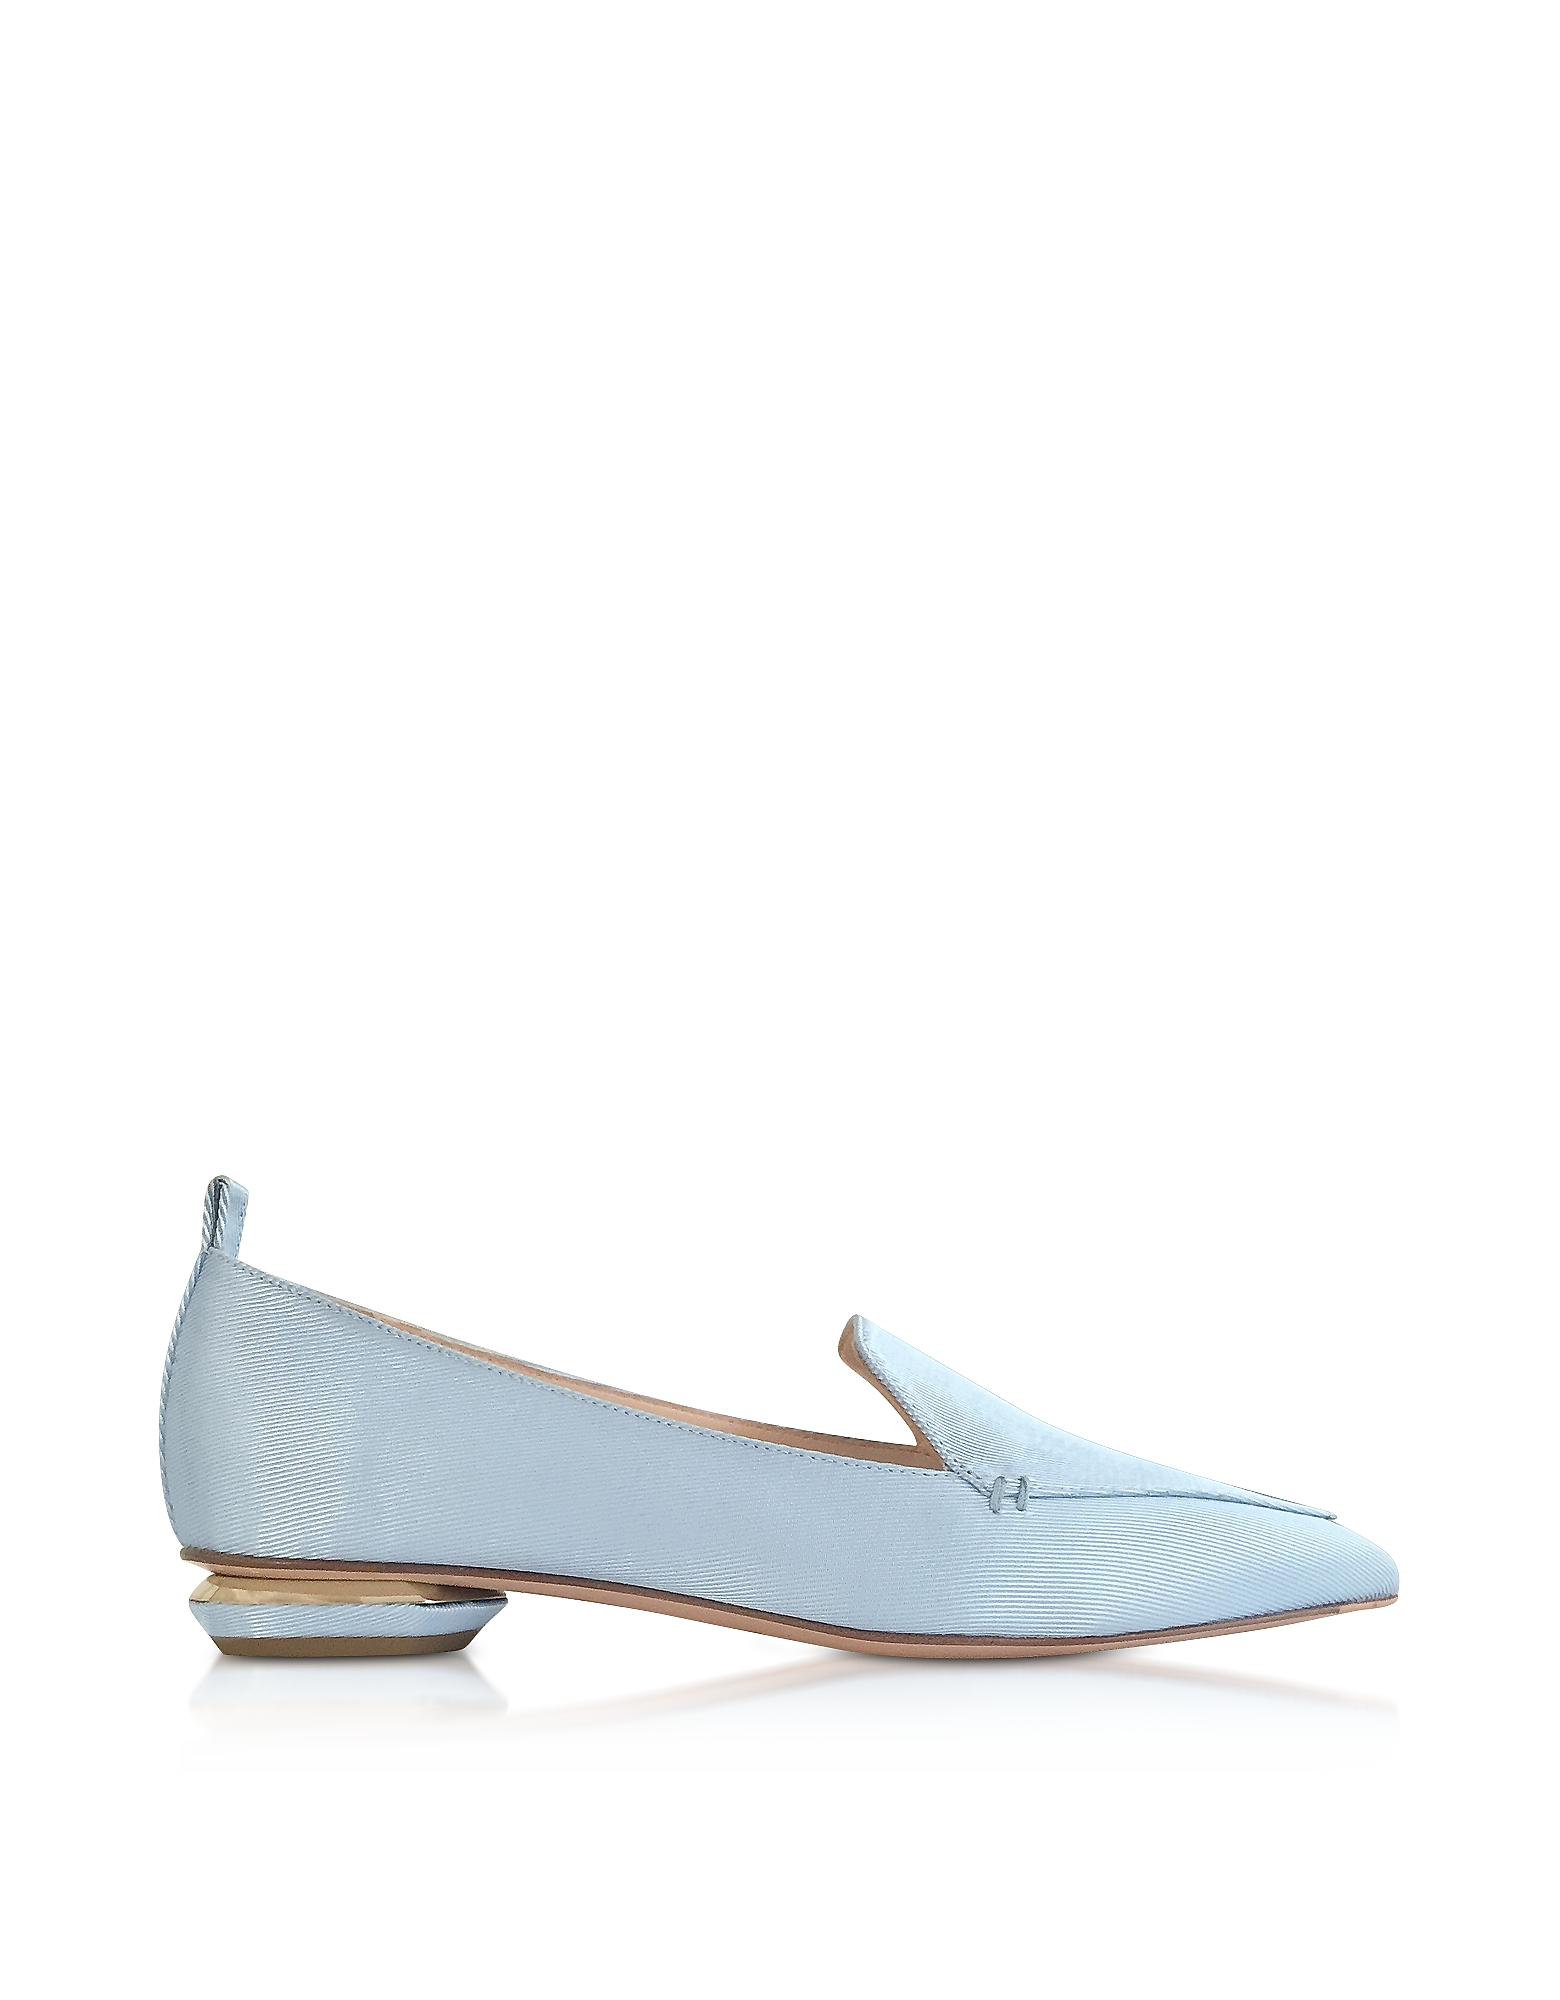 Nicholas Kirkwood Shoes, Platinum Blue Satin Beya Loafers